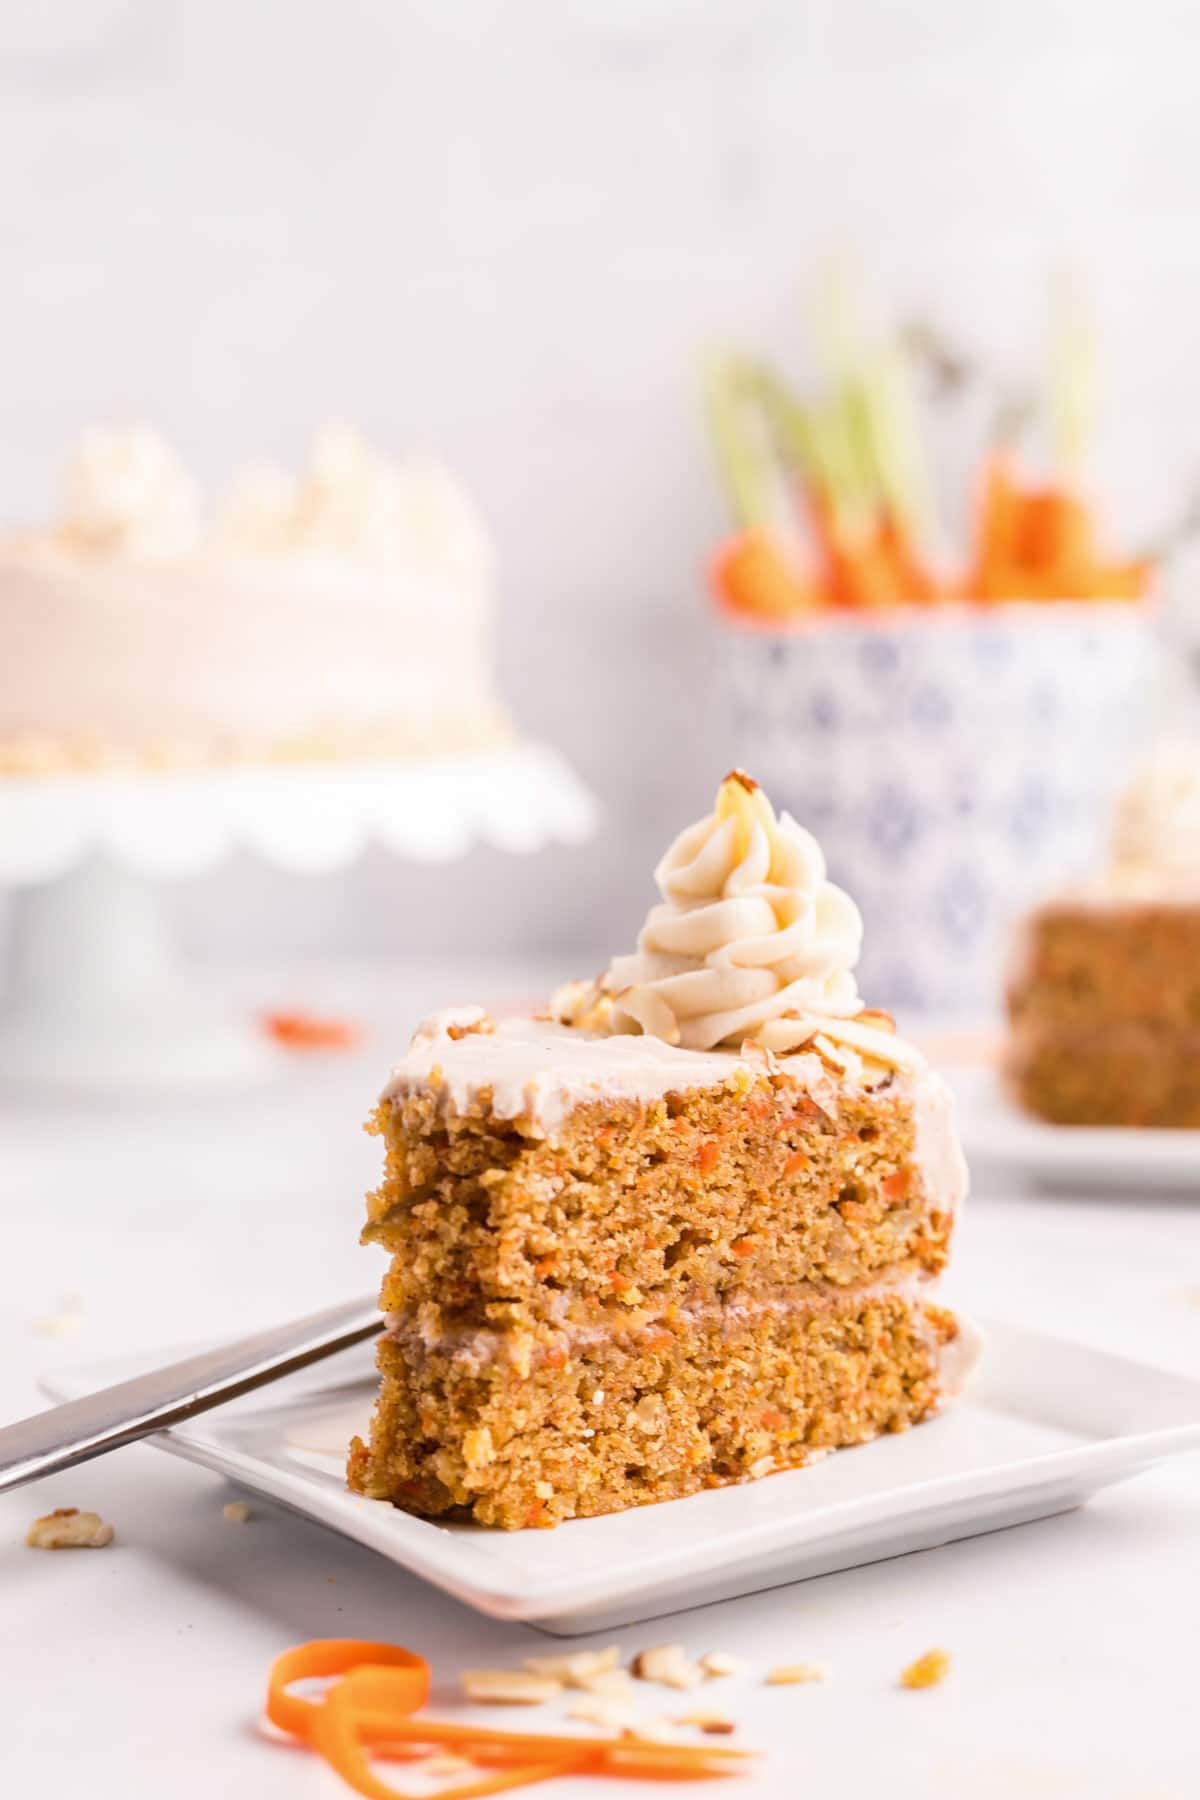 A slice of carrot cake with a dollop of cream cheese frosting on top